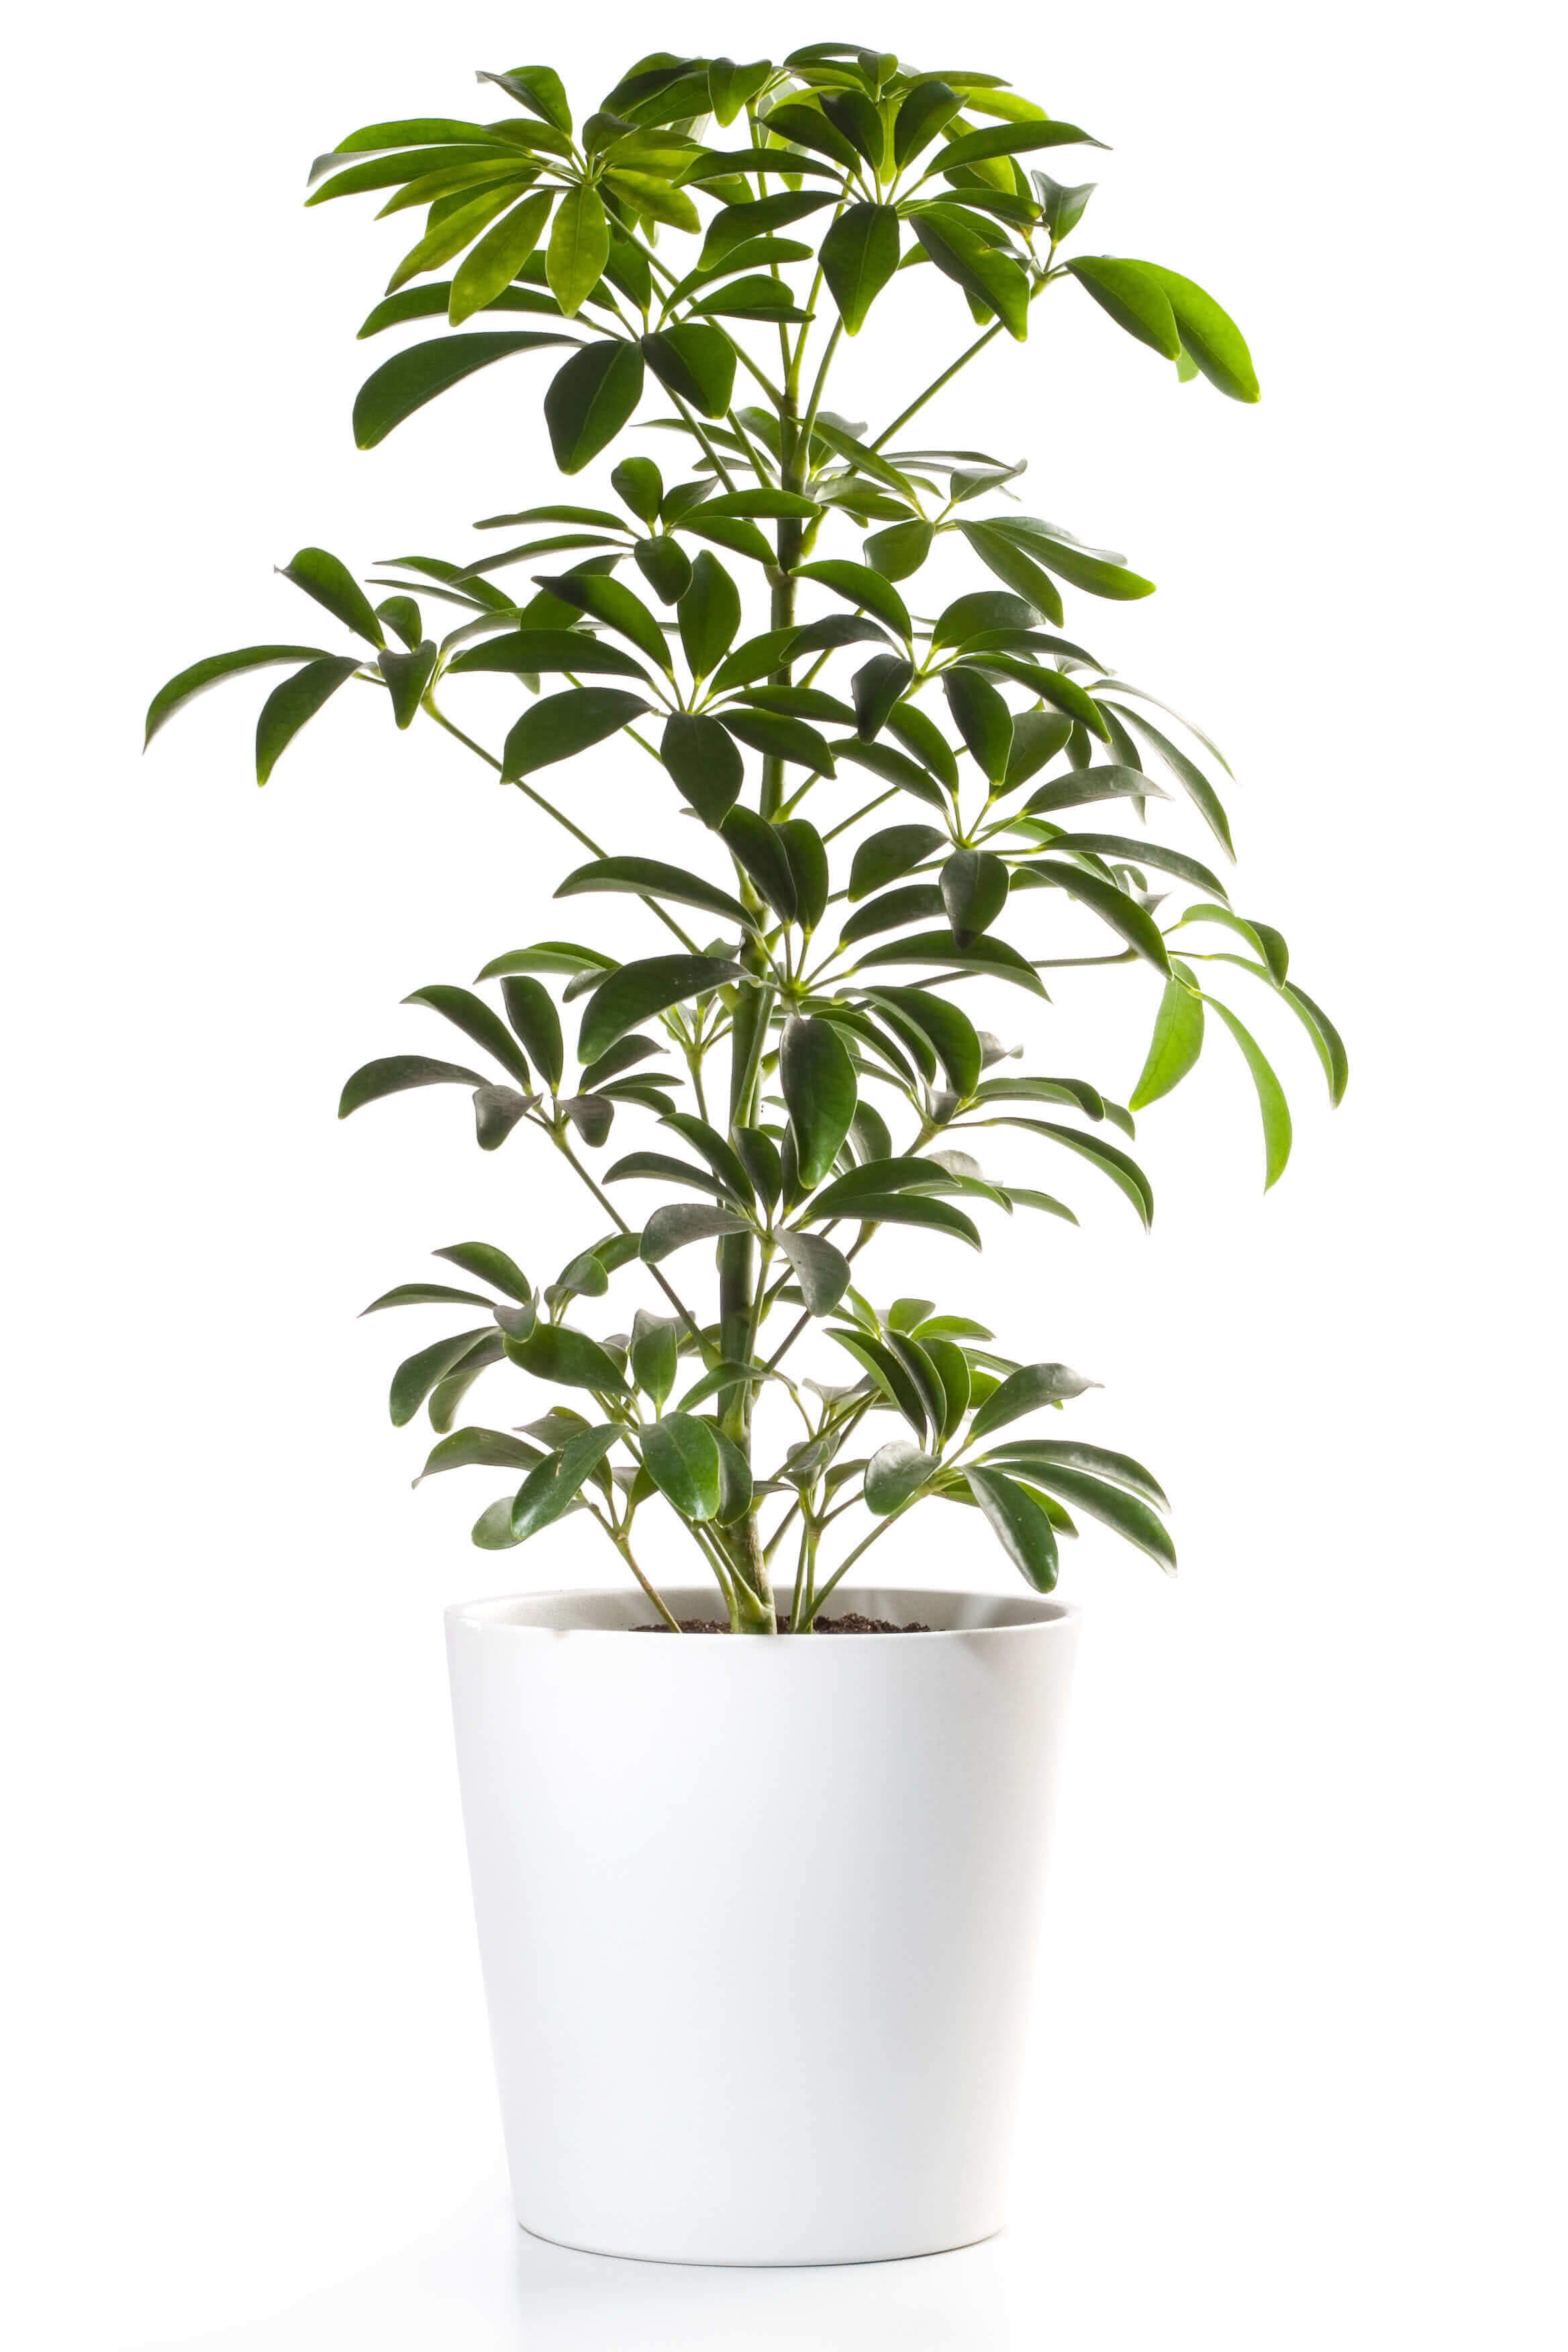 Top 10 low maintenance plants easy care plants desk plants for Low maintenance indoor plants